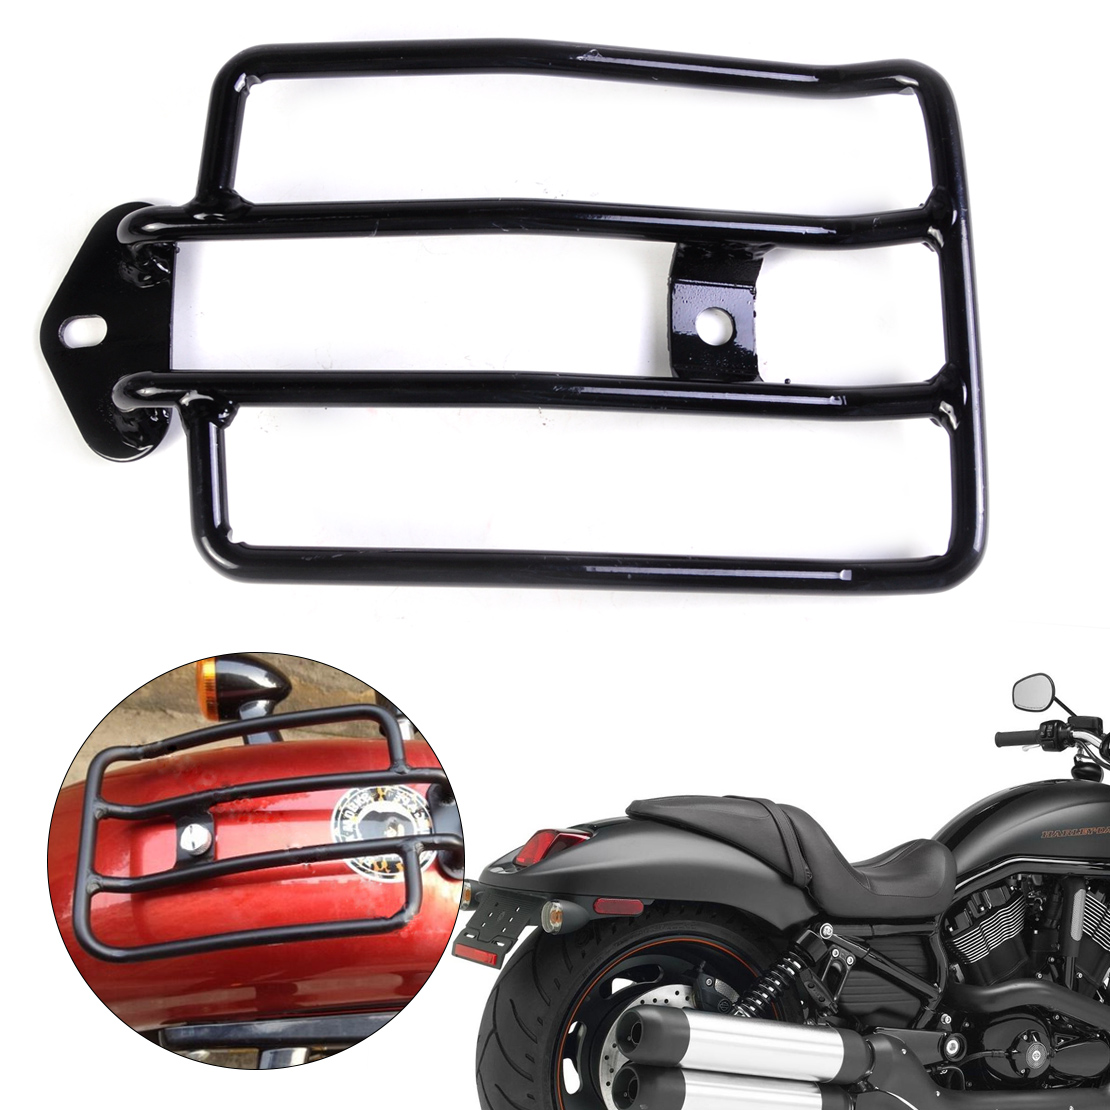 DWCX Motorcycle Black Rear Seat Luggage Carrier Cargo Support Shelf Rack Fit for Harley Davidson Sportster 1200 Sportster 883 motorbike black solo seat luggage shelf frame rack for harley sportster xl 883 1200 85 03